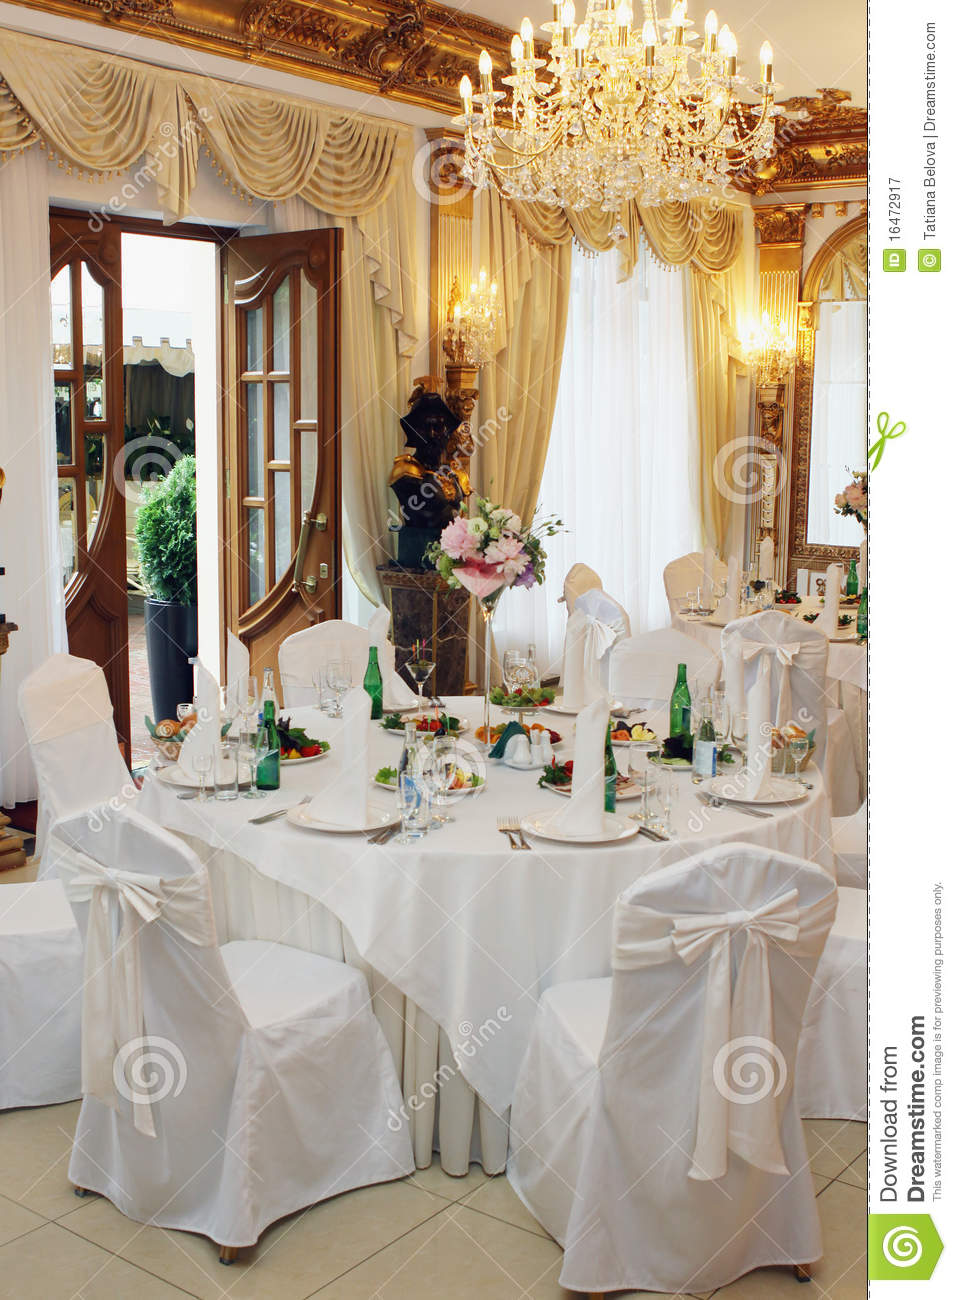 Table setting at a wedding reception royalty free stock for Wedding photography settings